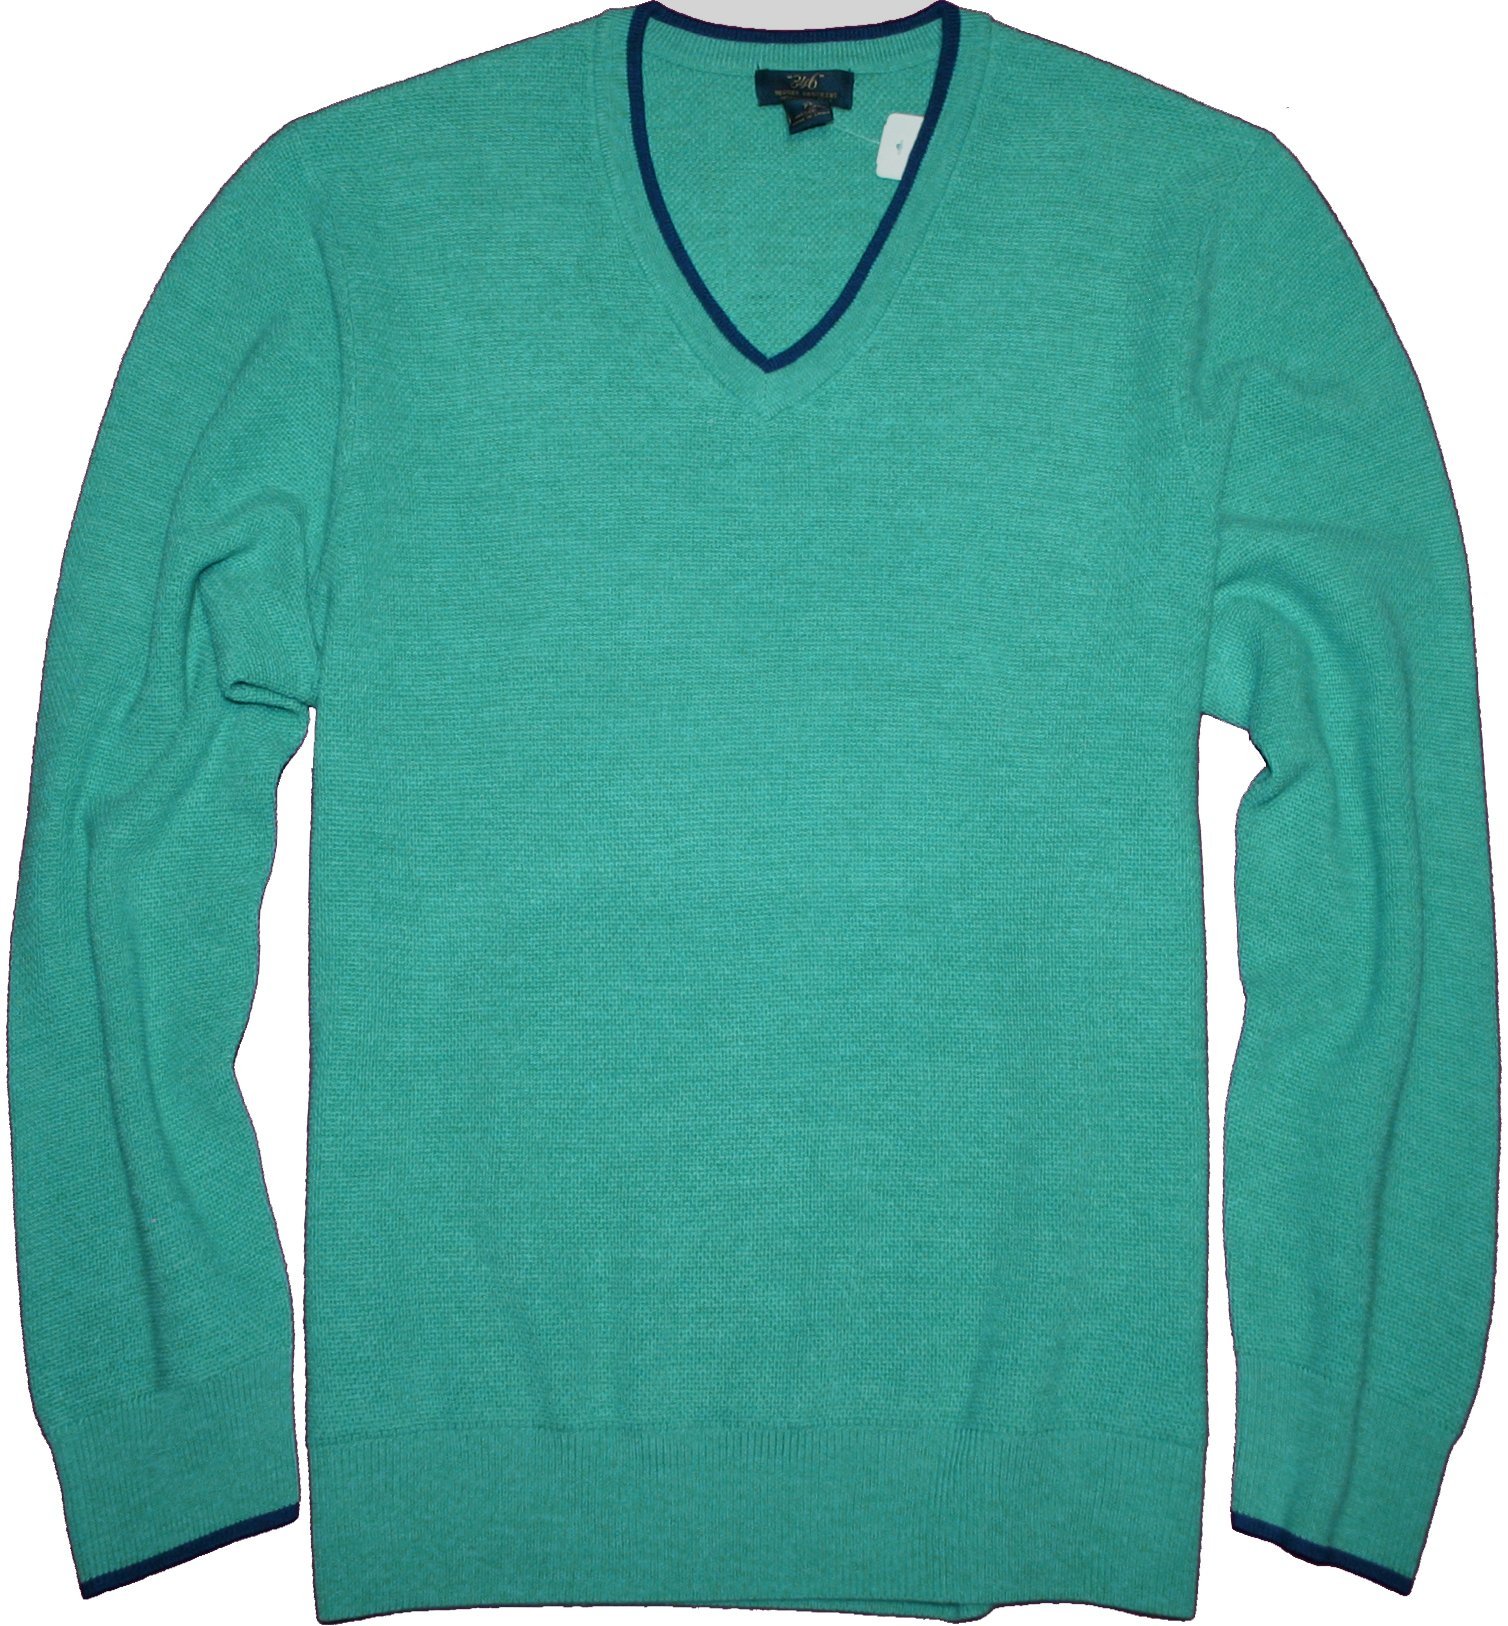 Brooks Brothers 346 Extra Fine Merino Wool Tipped V-Neck Knit Sweater (Teal, 2XL)